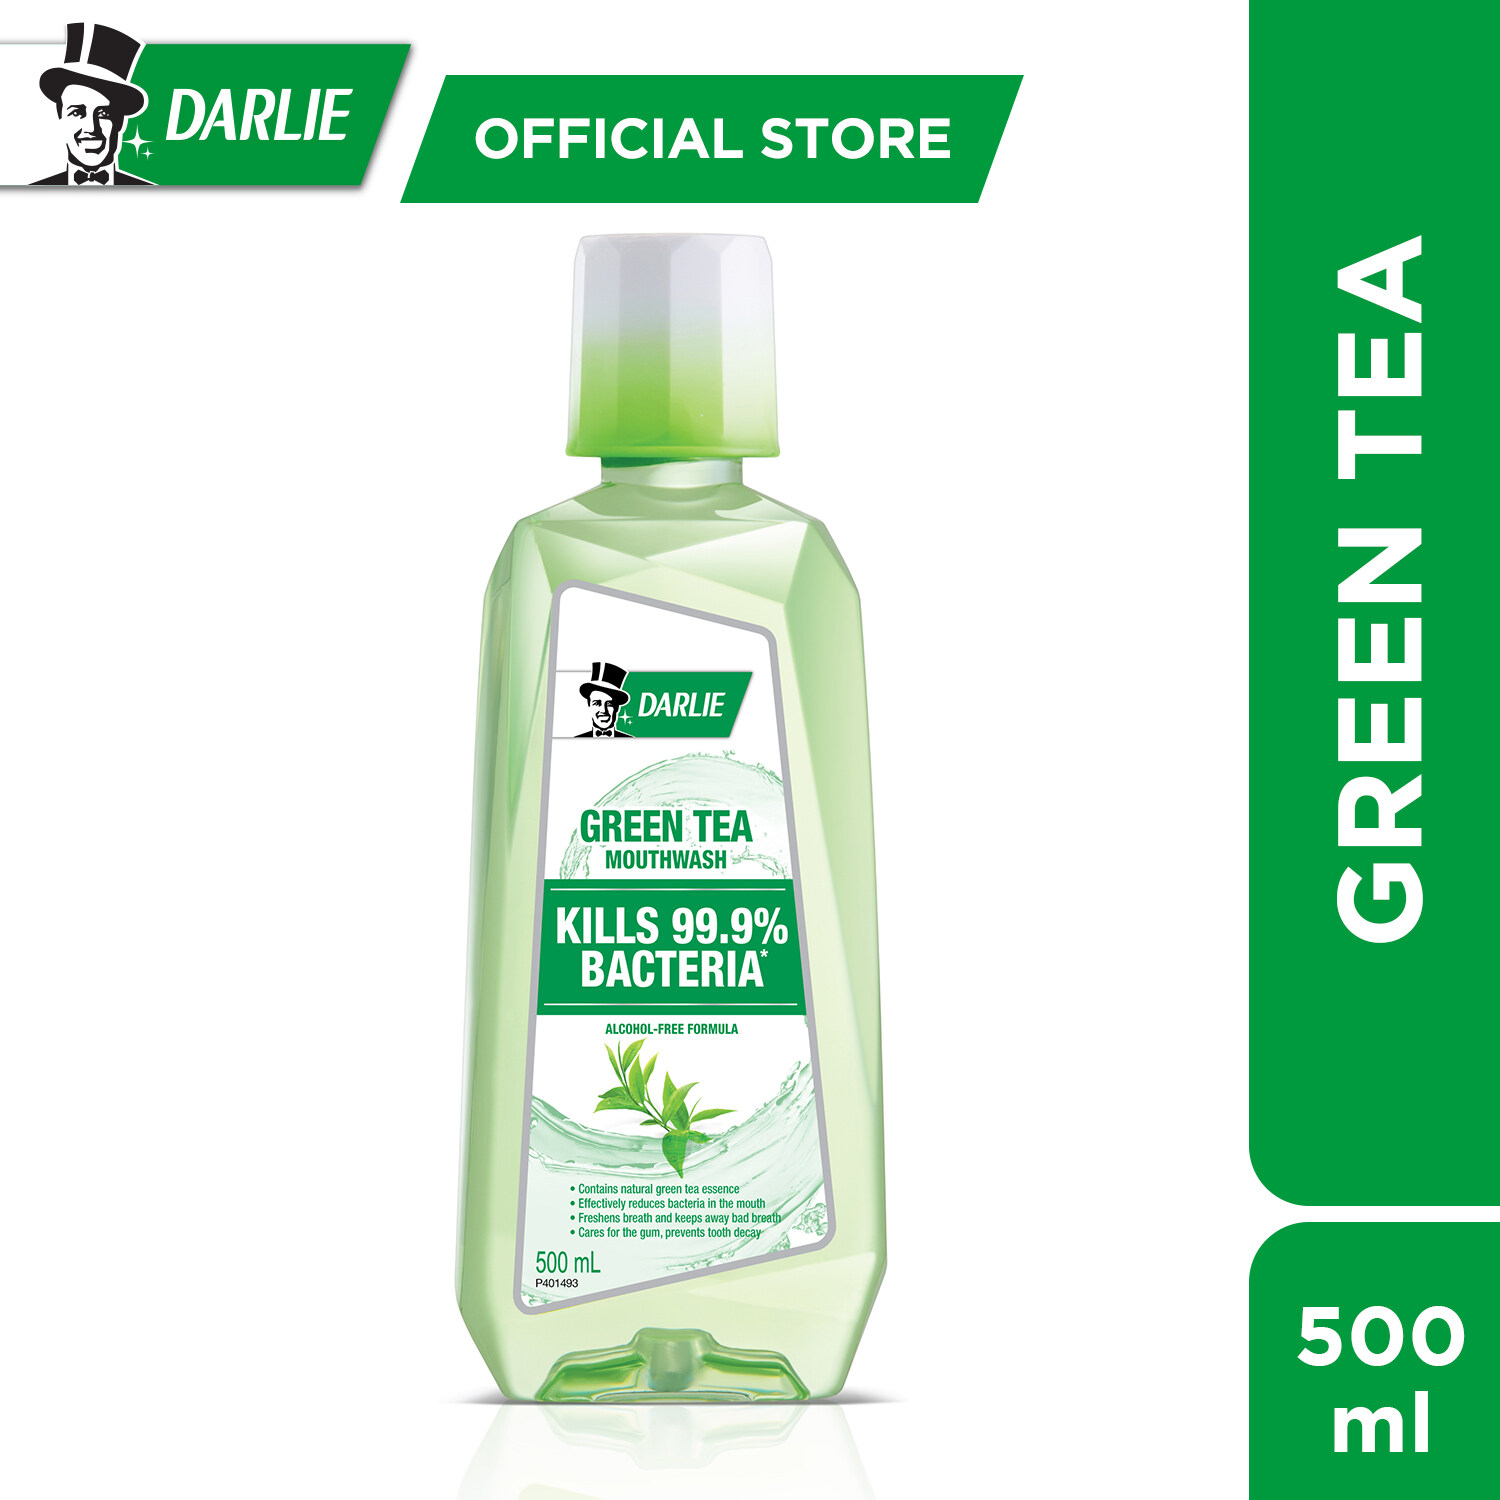 Darlie Mouth Rinse Green Tea 500 ml